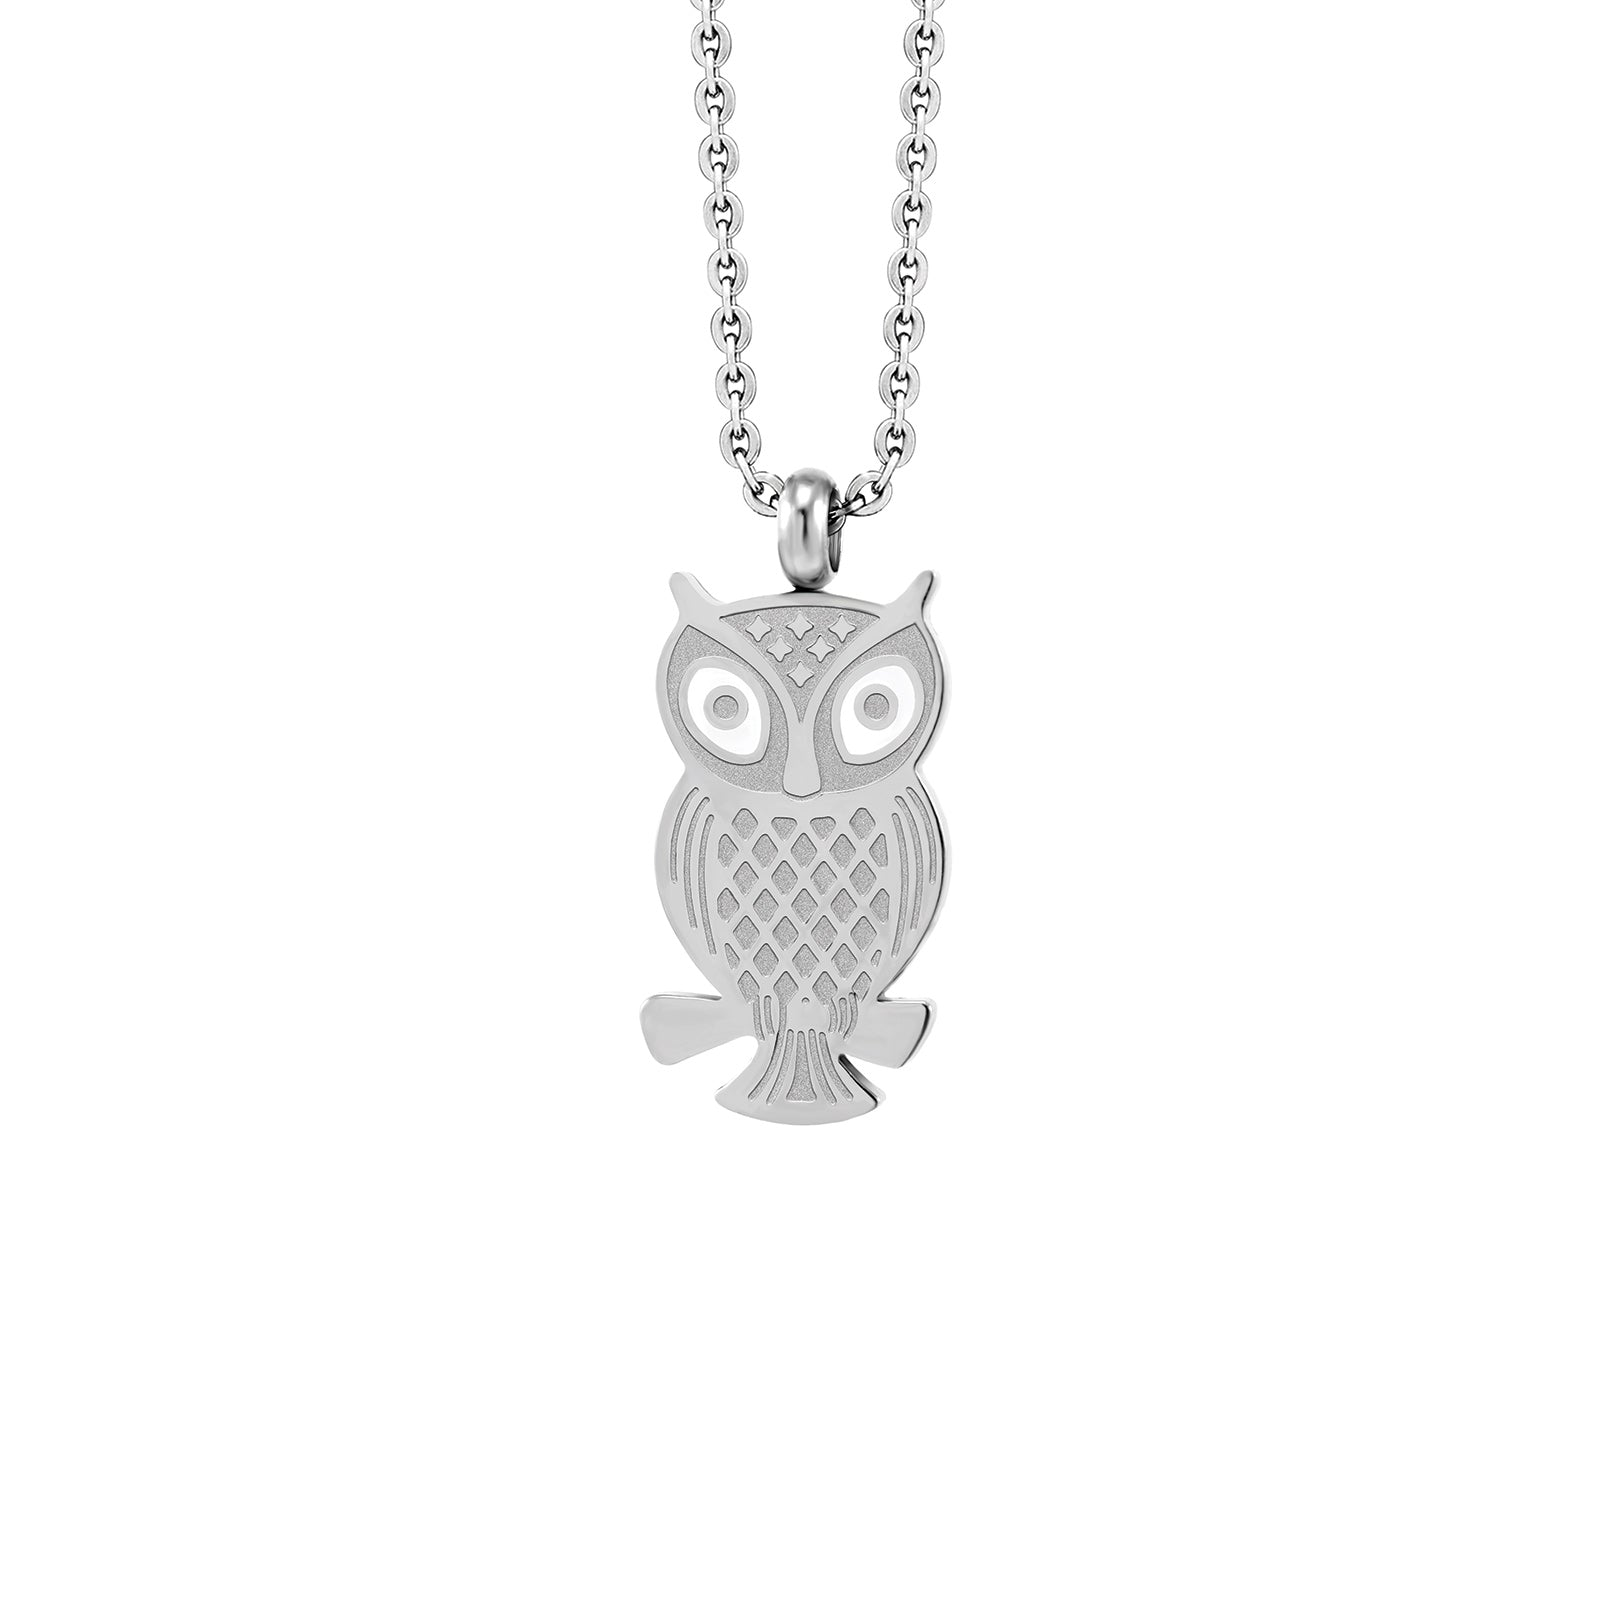 MNC-P403-A Stainless Steel Owl Pendant